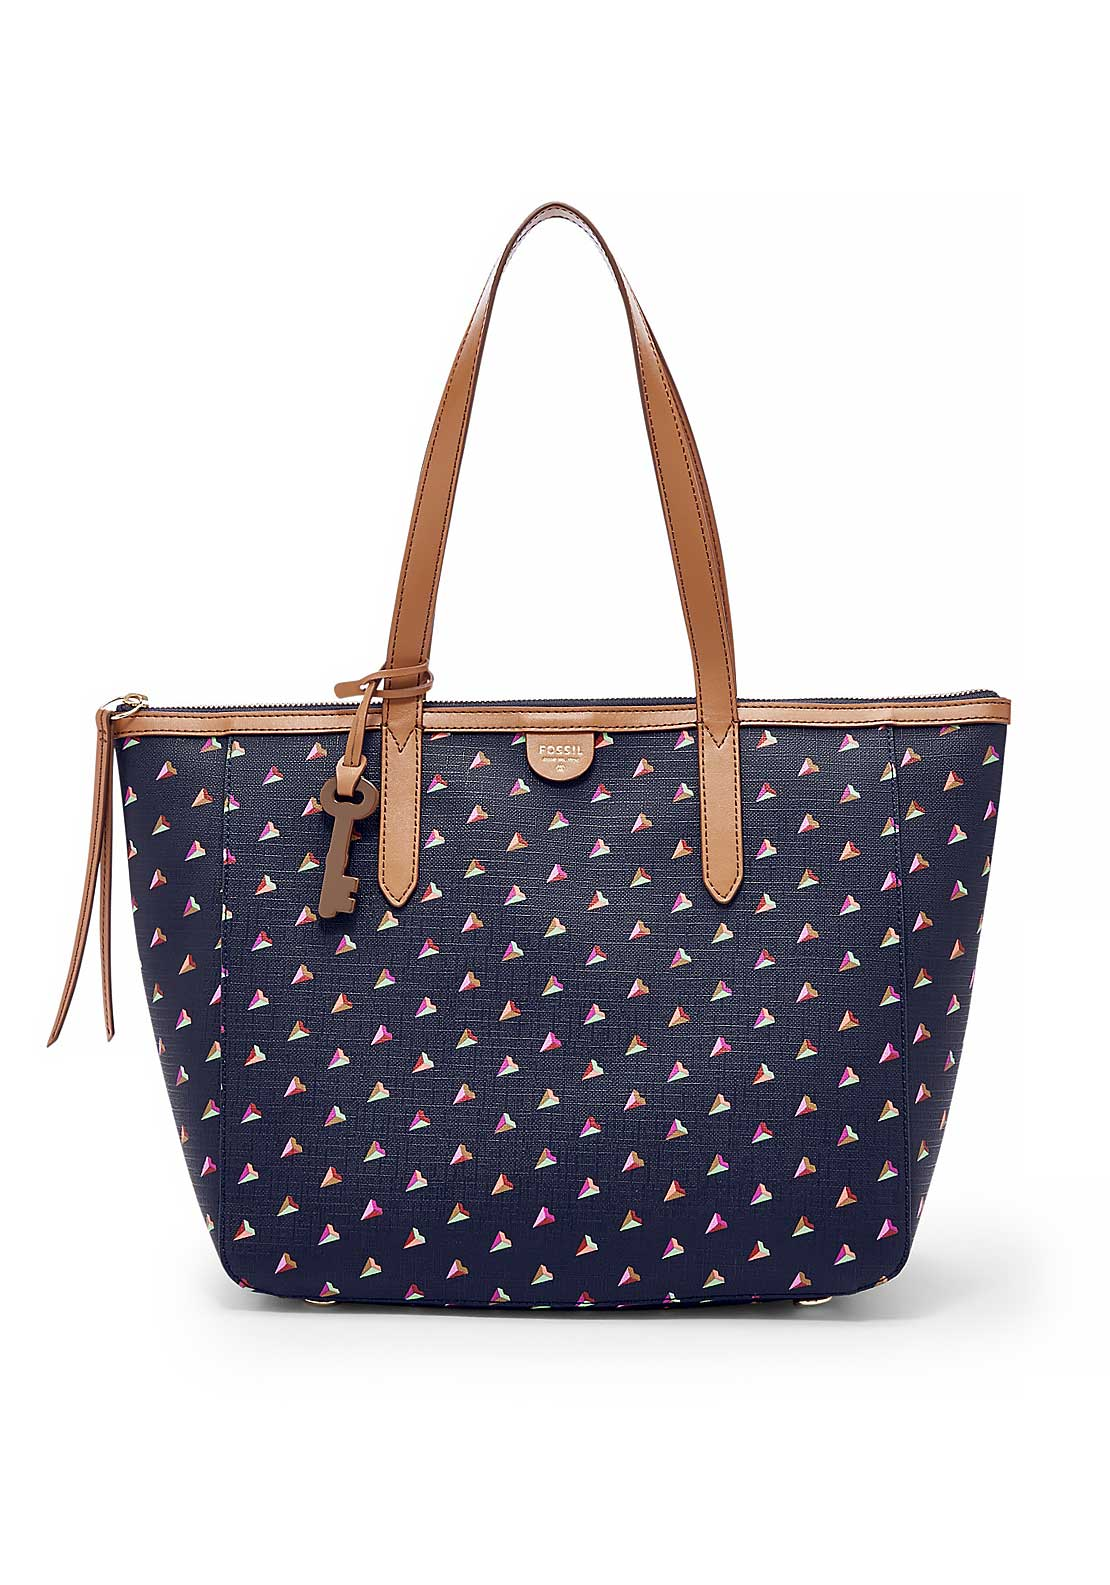 Fossil Sydney Hearts Shopper Bag, Navy